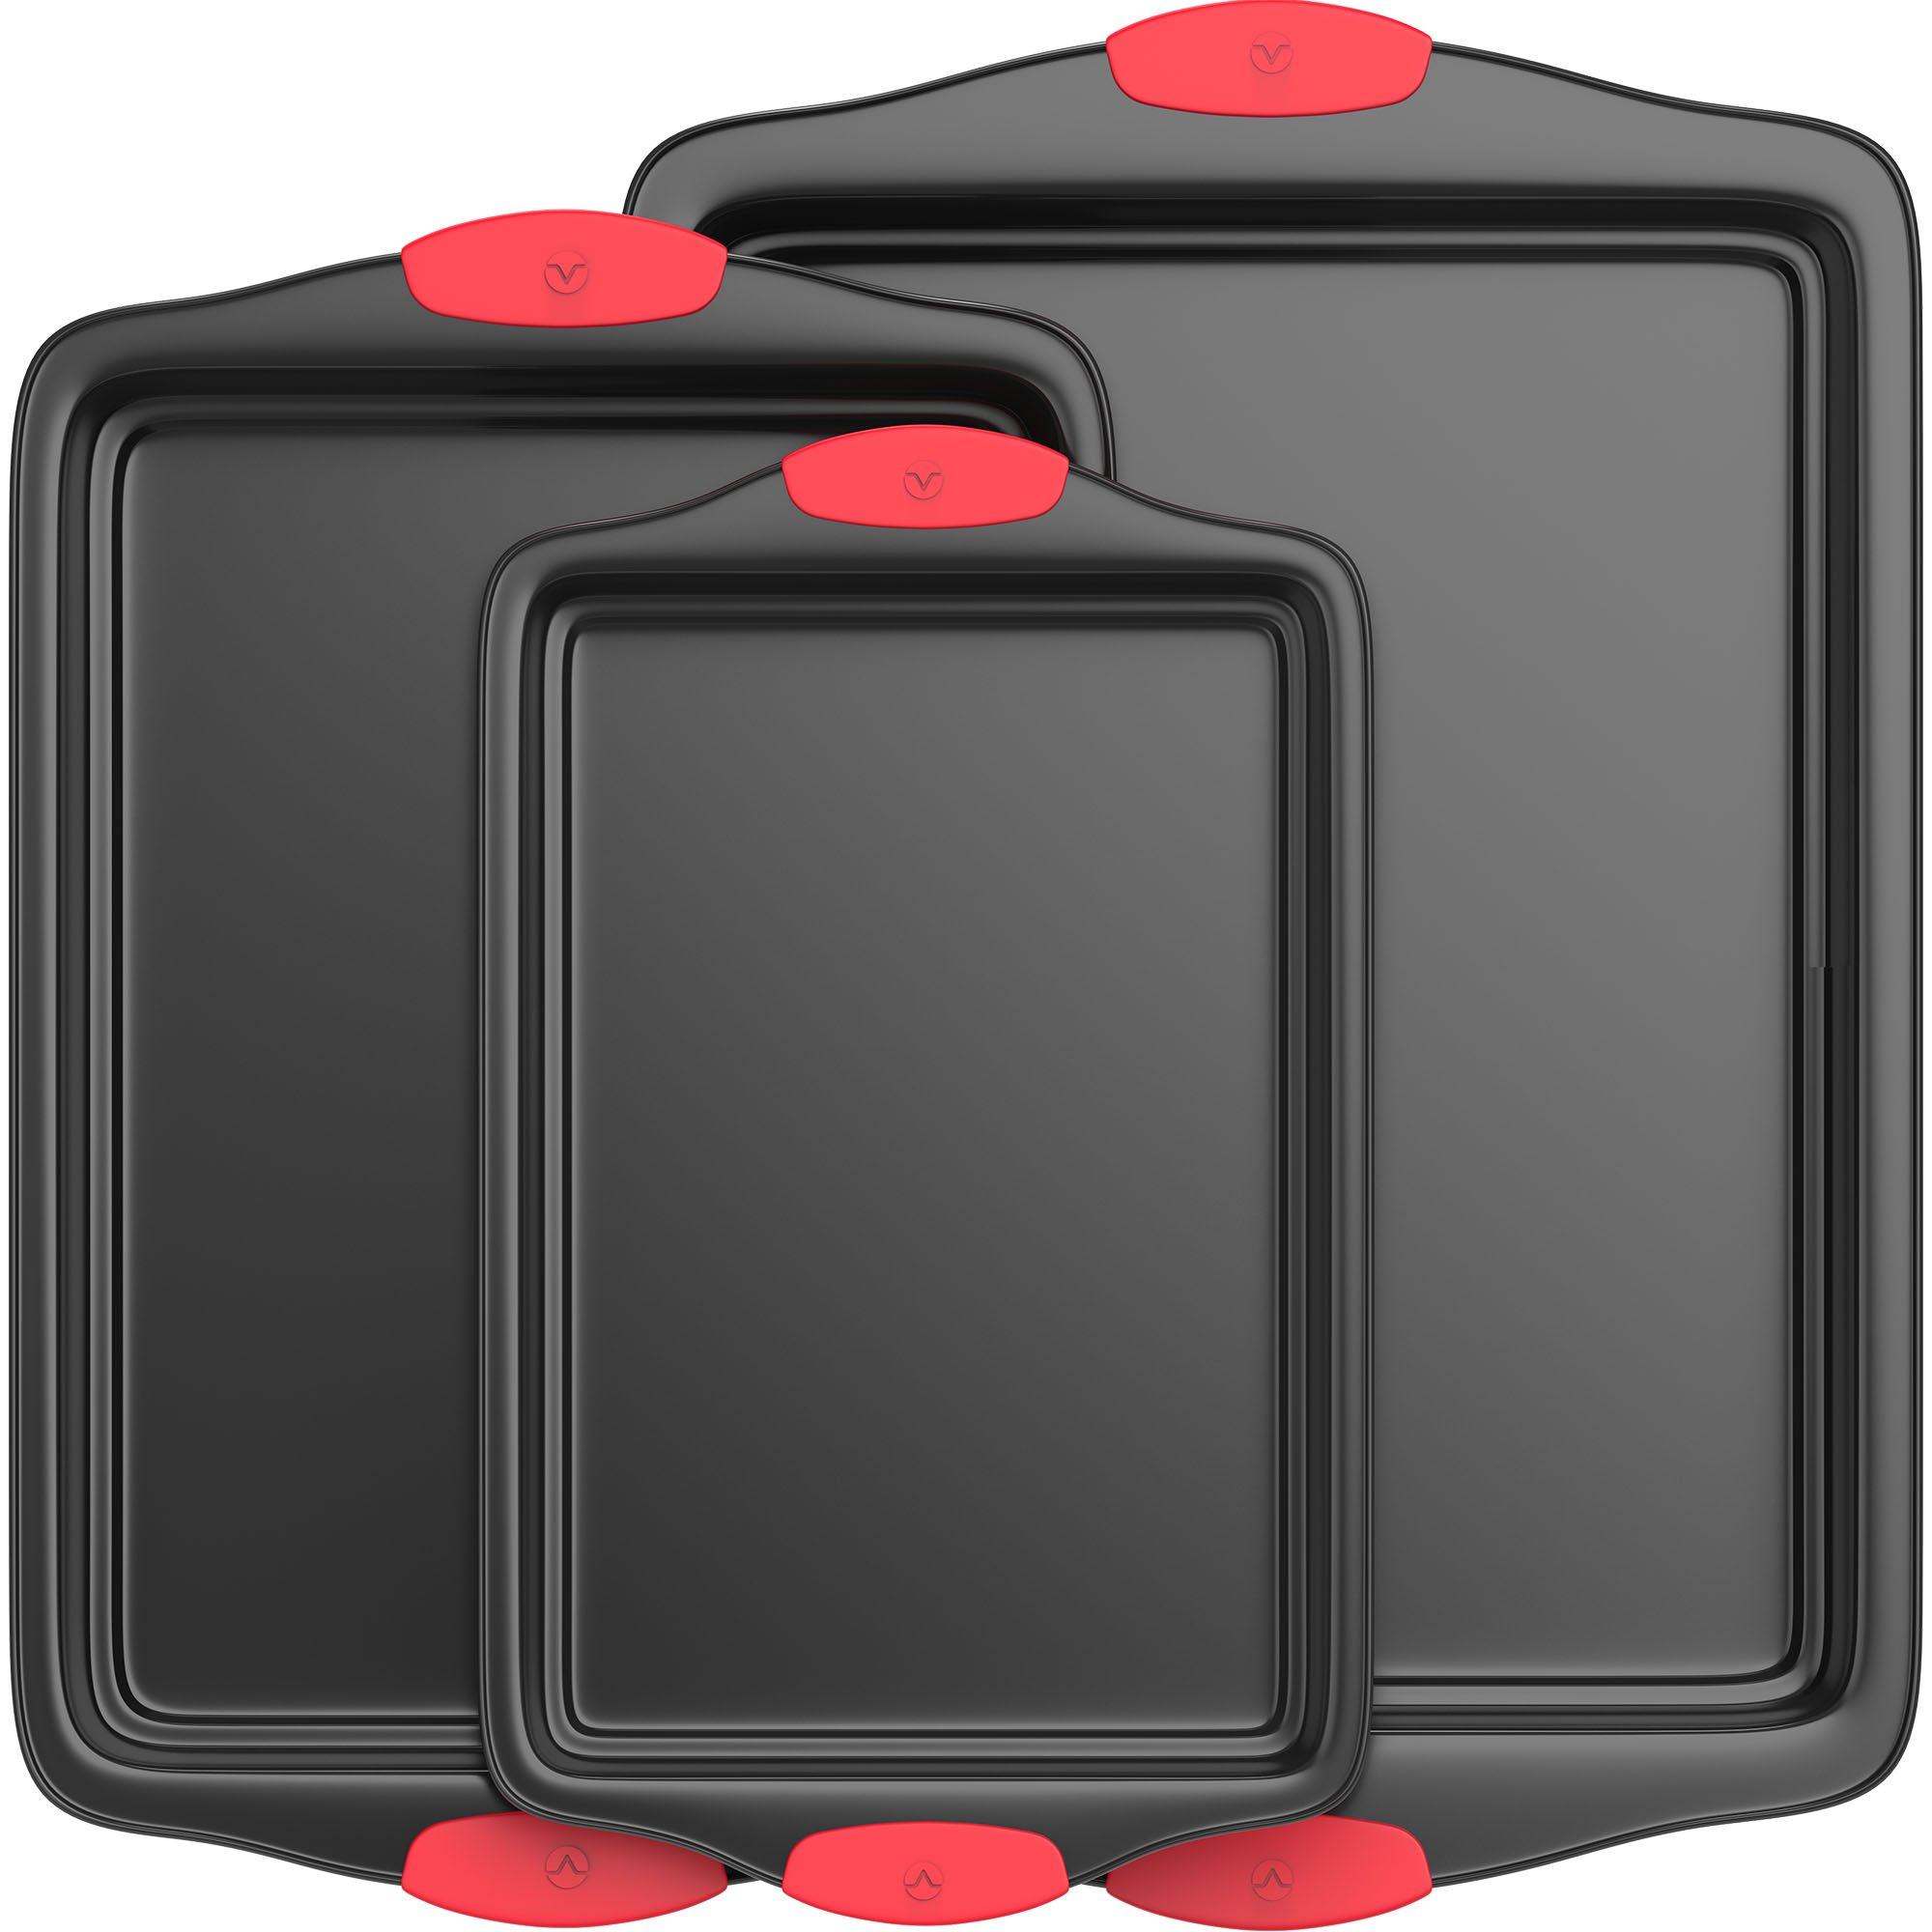 Vremi 3 Piece Baking Sheets Nonstick Set - Professional Non Stick Sheet Pan Set for Baking - Carbon Steel Baking Pans Cookie Sheets with Red Silicone Handles - has Quarter and Half Sheet Pans by Vremi (Image #5)